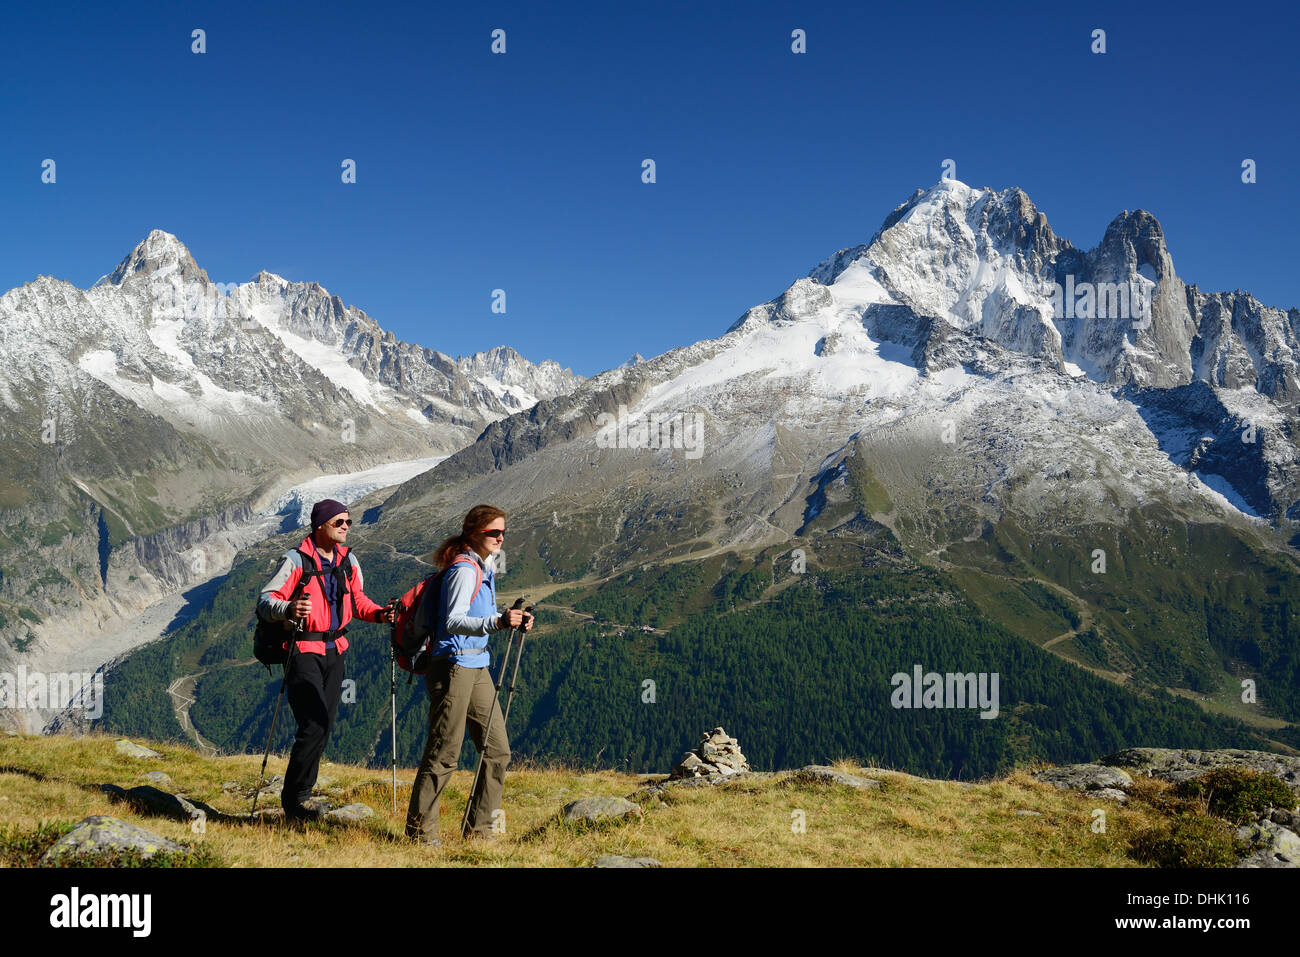 Woman and man hiking with view to Aiguille du Chardonnet, Aiguille d' Argentiere, Aiguille Verte and Grand Dru, Mont Blanc range - Stock Image